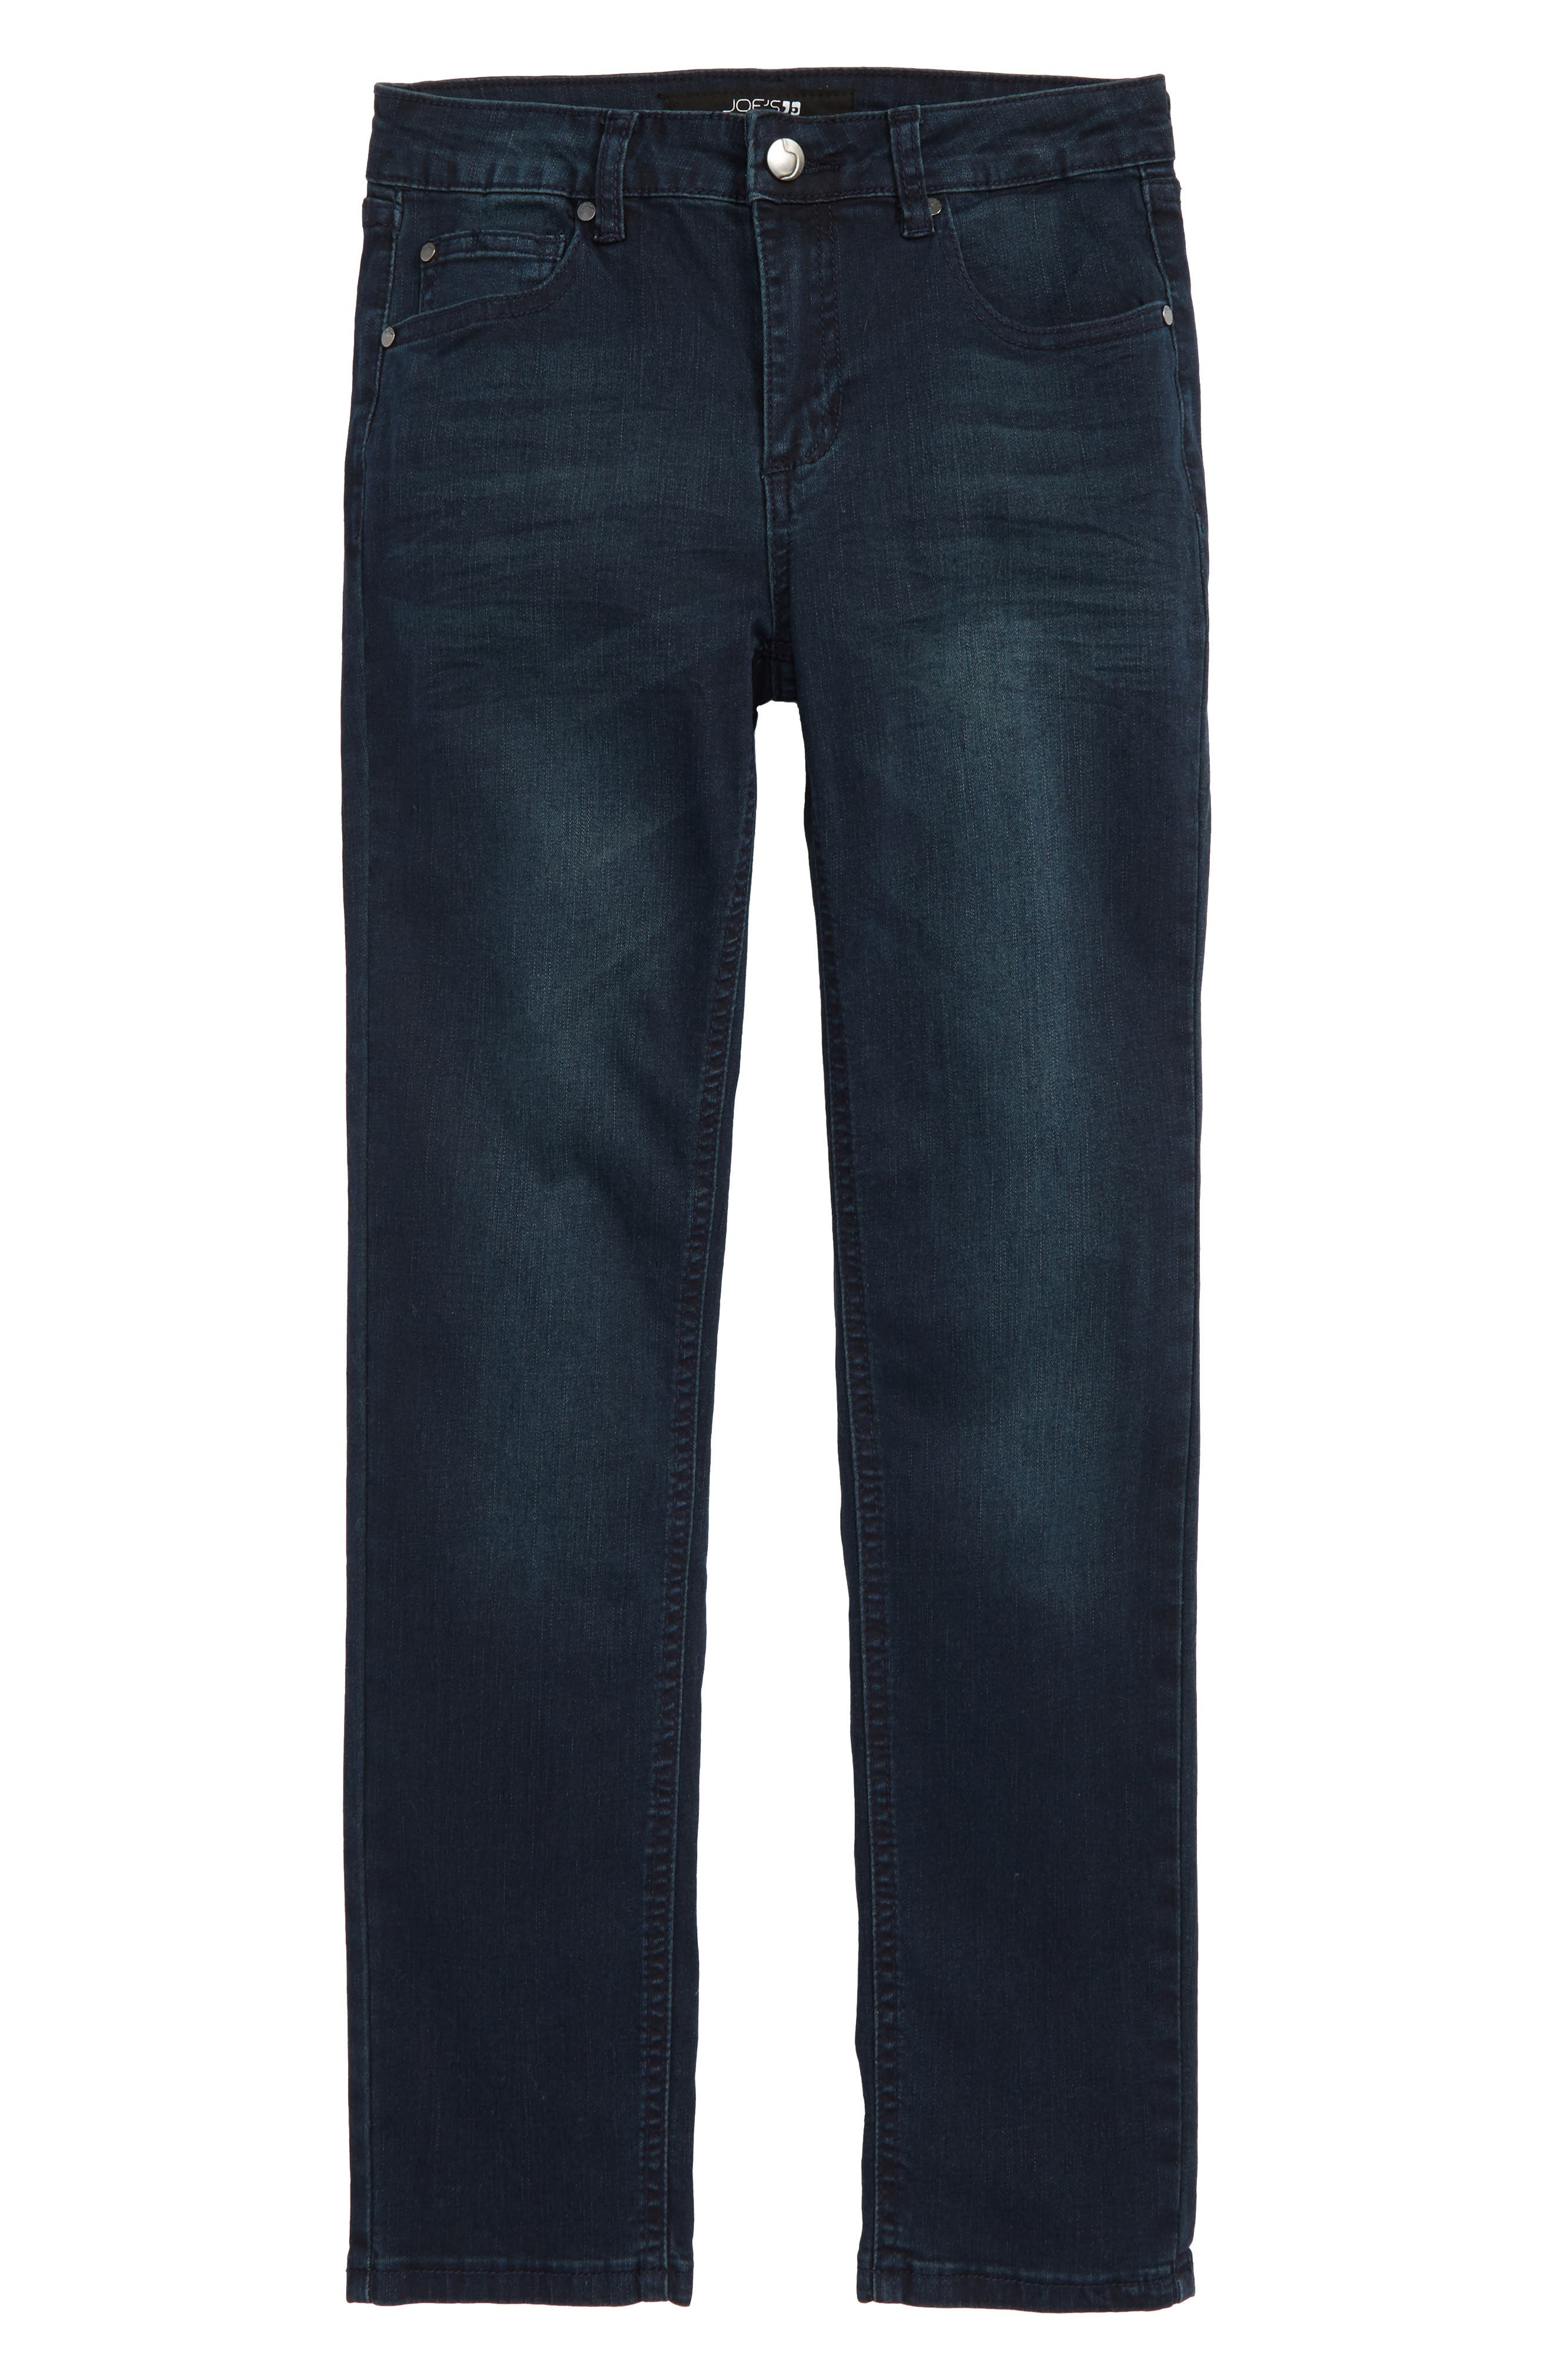 Rad Kinetic Stretch Skinny Jeans,                             Main thumbnail 1, color,                             020